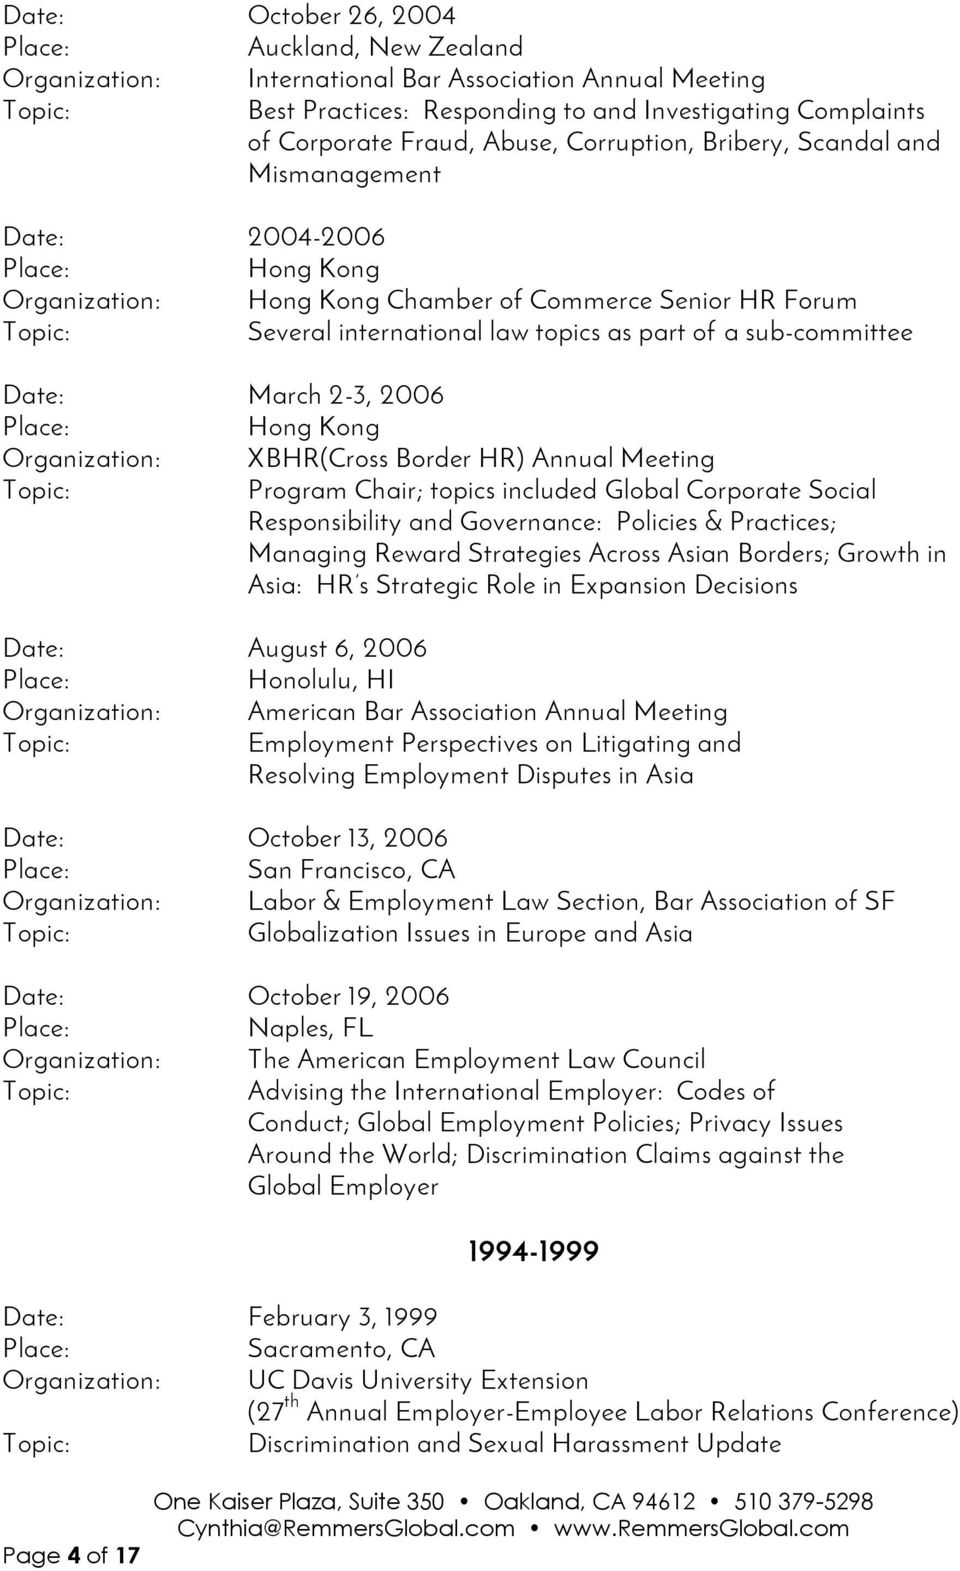 March 2-3, 2006 Hong Kong Organization: XBHR(Cross Border HR) Annual Meeting Program Chair; topics included Global Corporate Social Responsibility and Governance: Policies & Practices; Managing